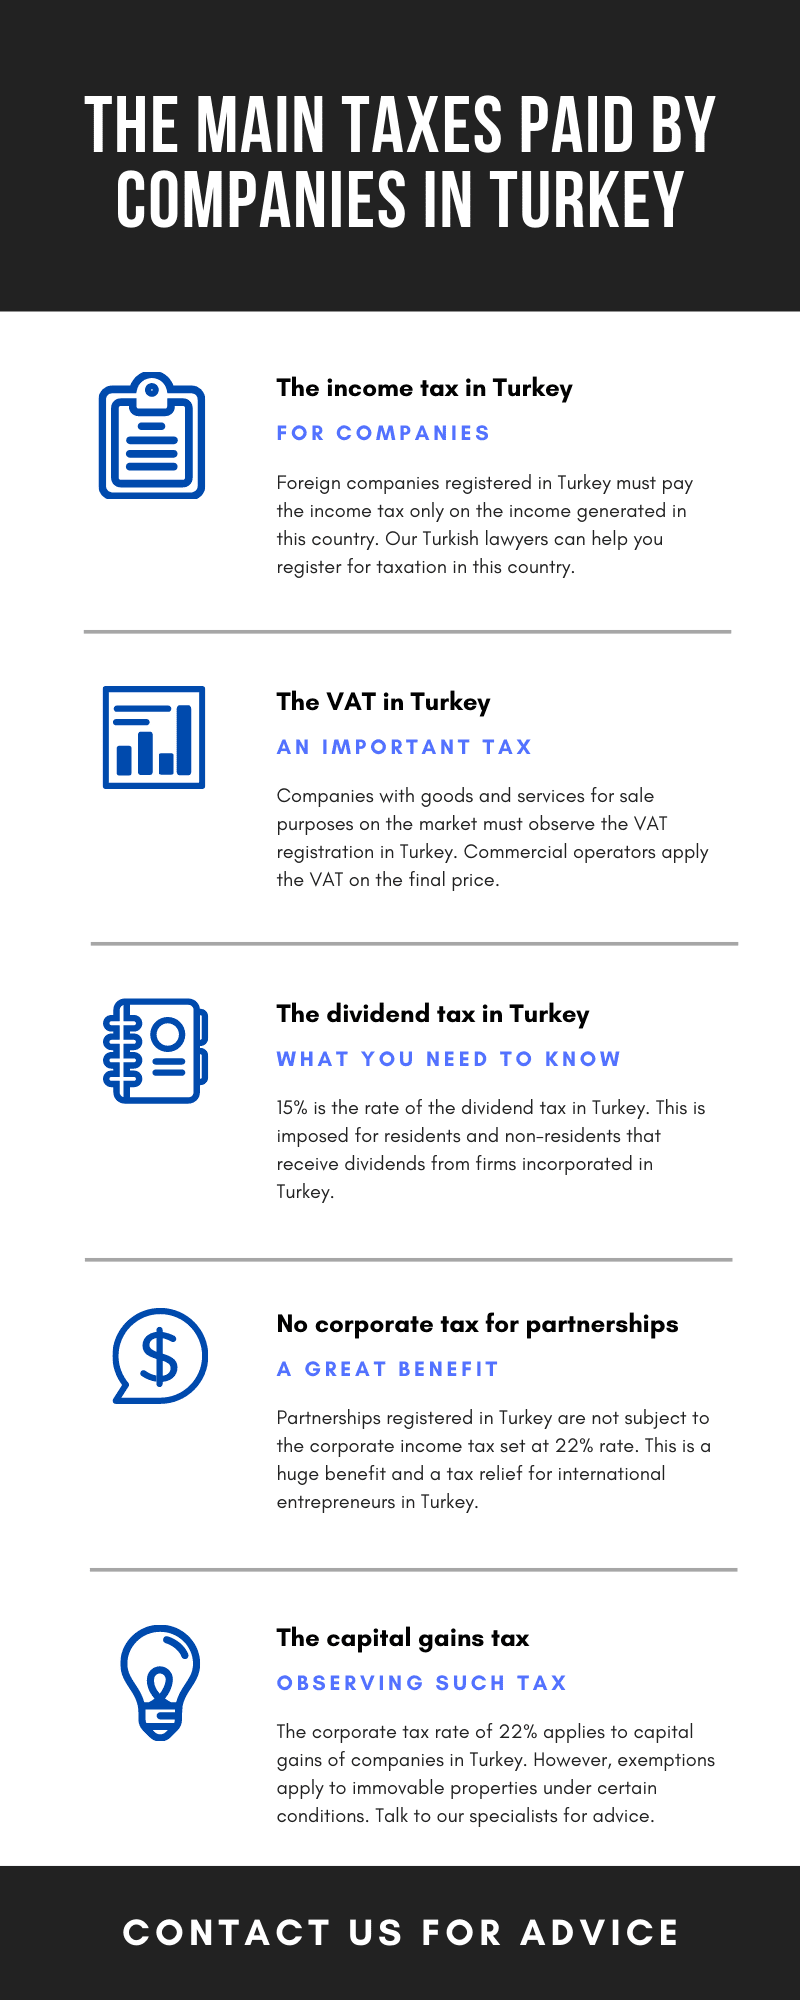 The main taxes paid by companies in Turkey (1).png